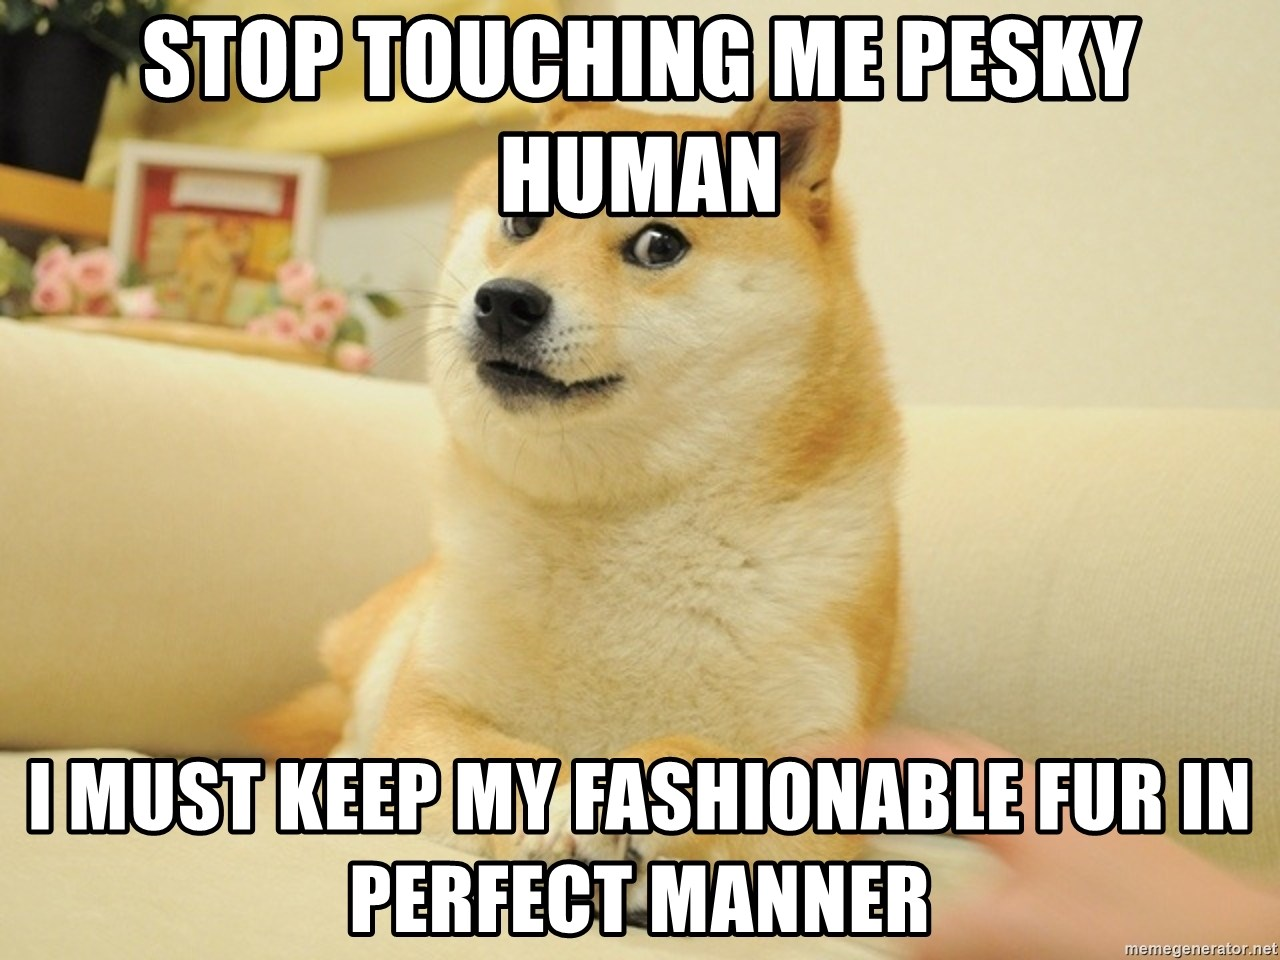 so doge - stop touching me pesky human i must keep my fashionable fur in perfect manner